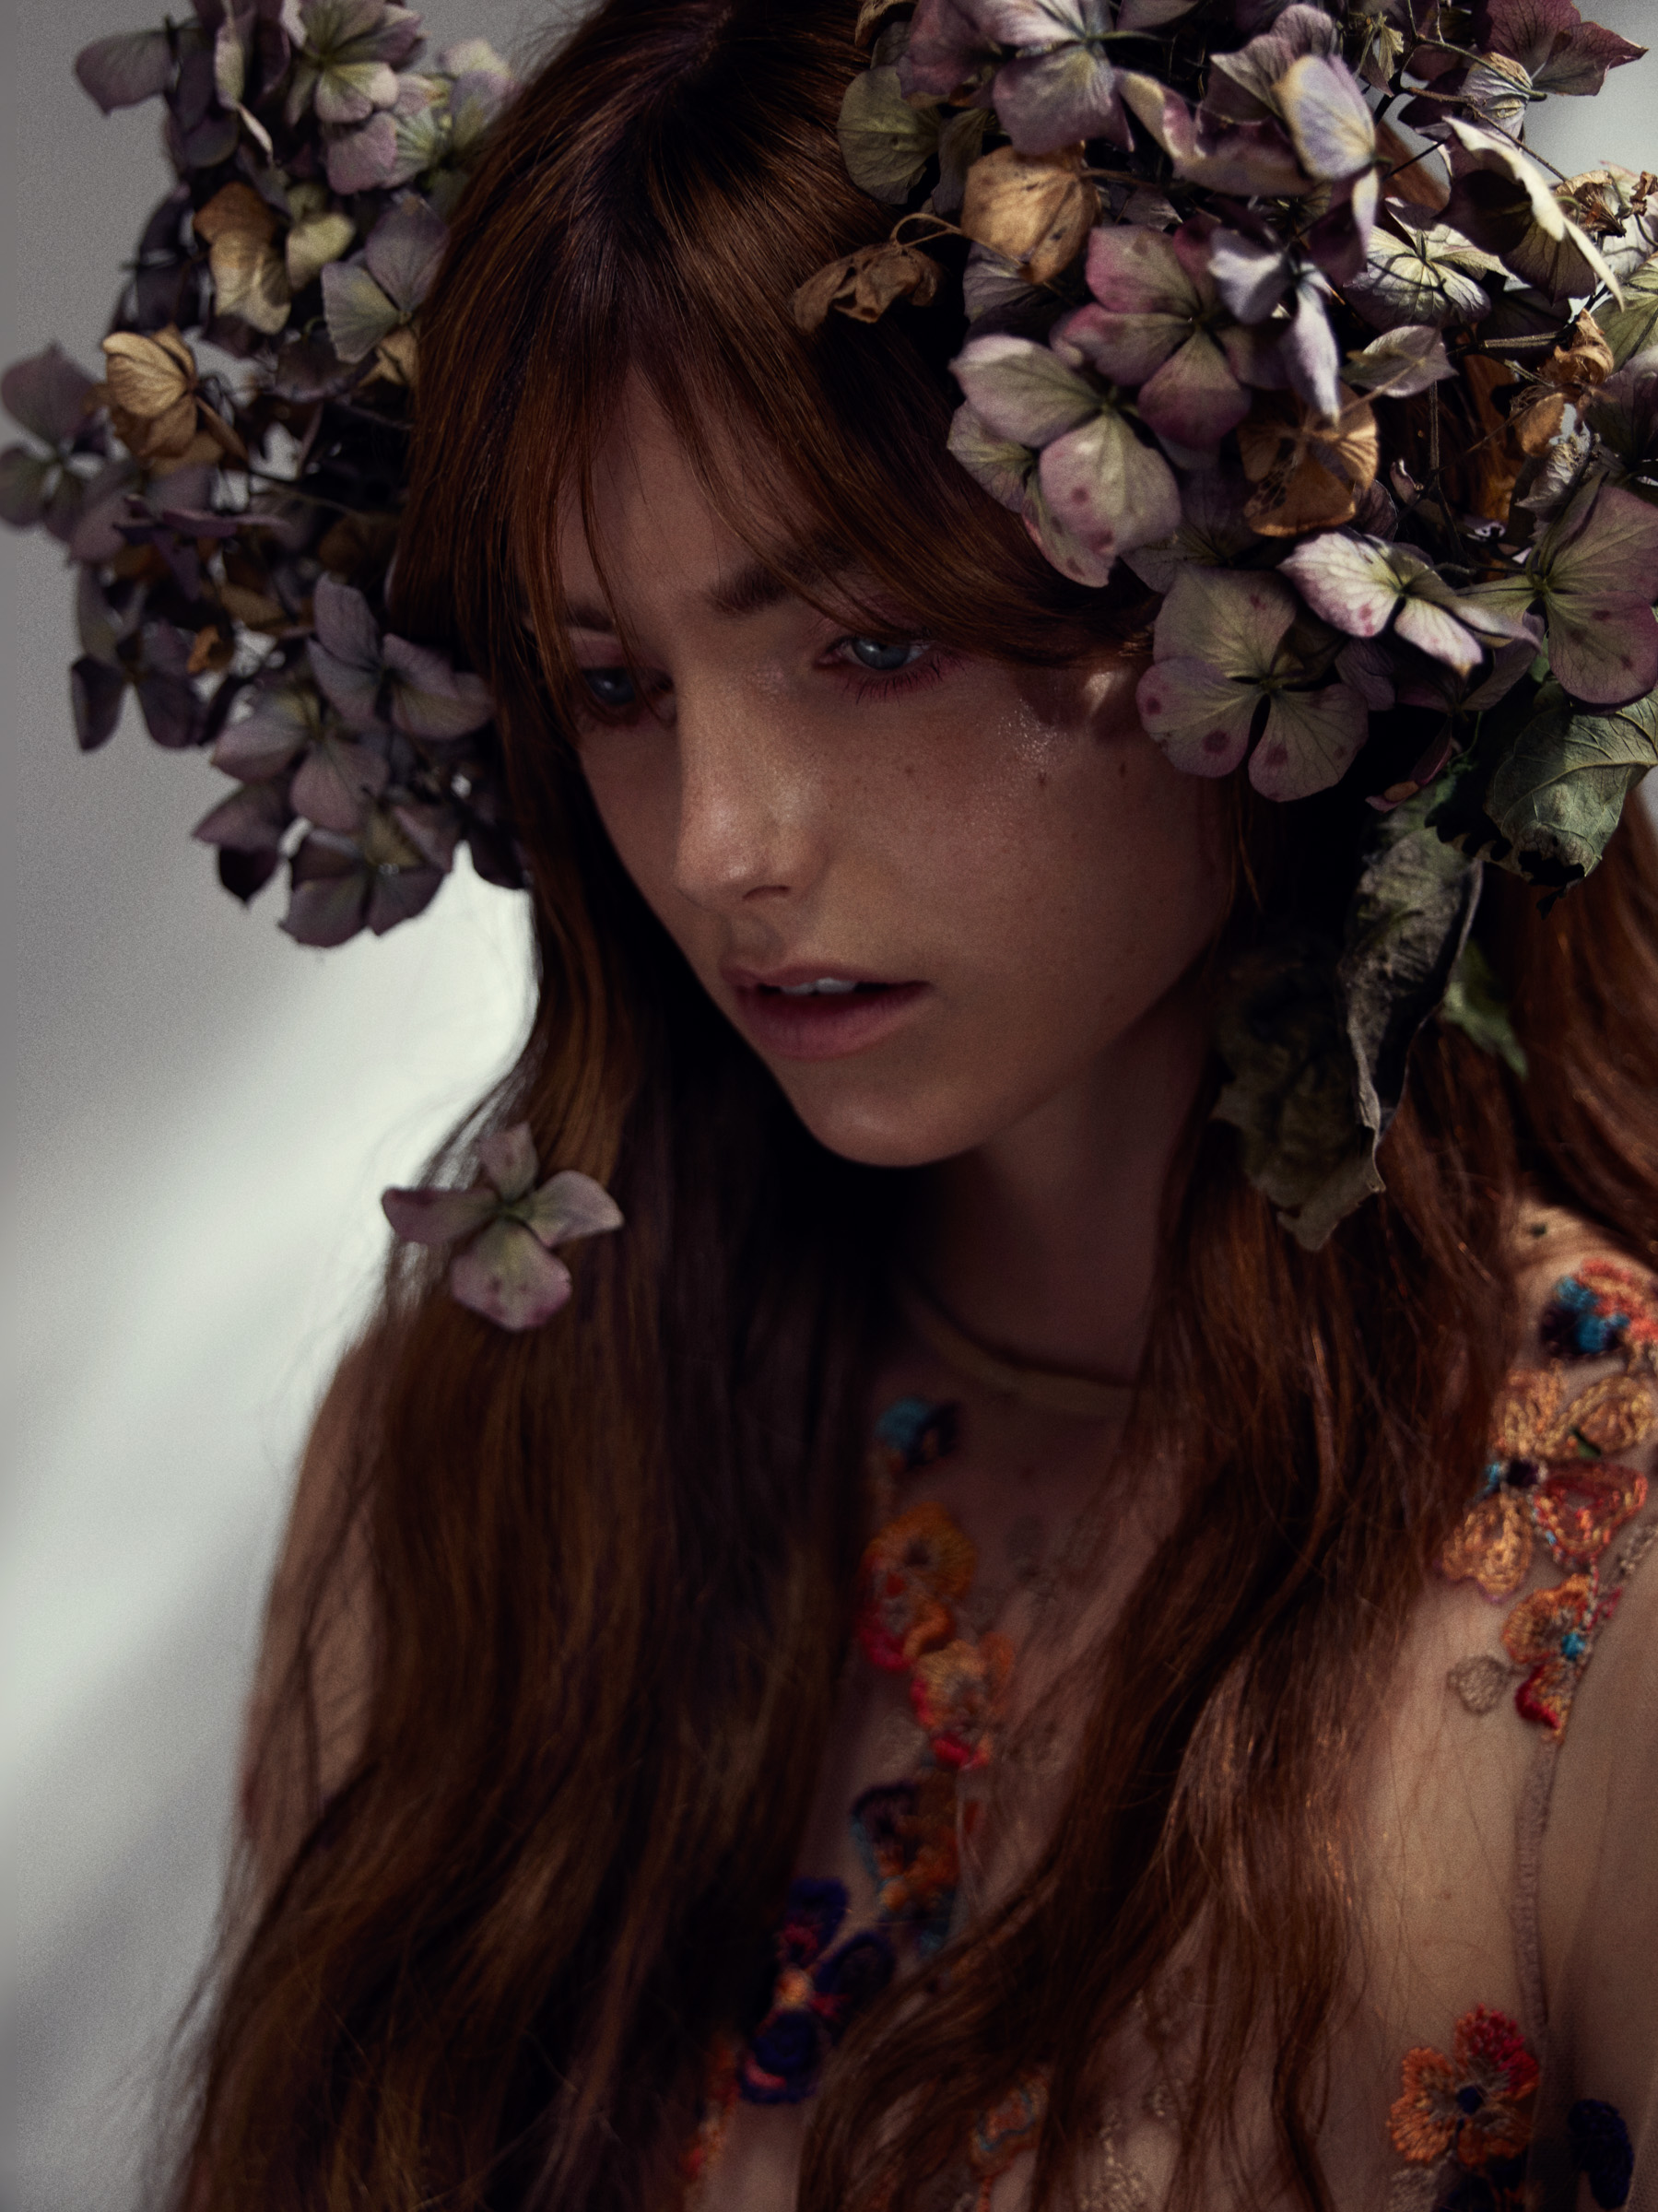 Jack-Eames-Ali-Pirzadeh-Wigs-Monet-Flowers-Hair-Beauty-Photography-Campaign-02.jpg